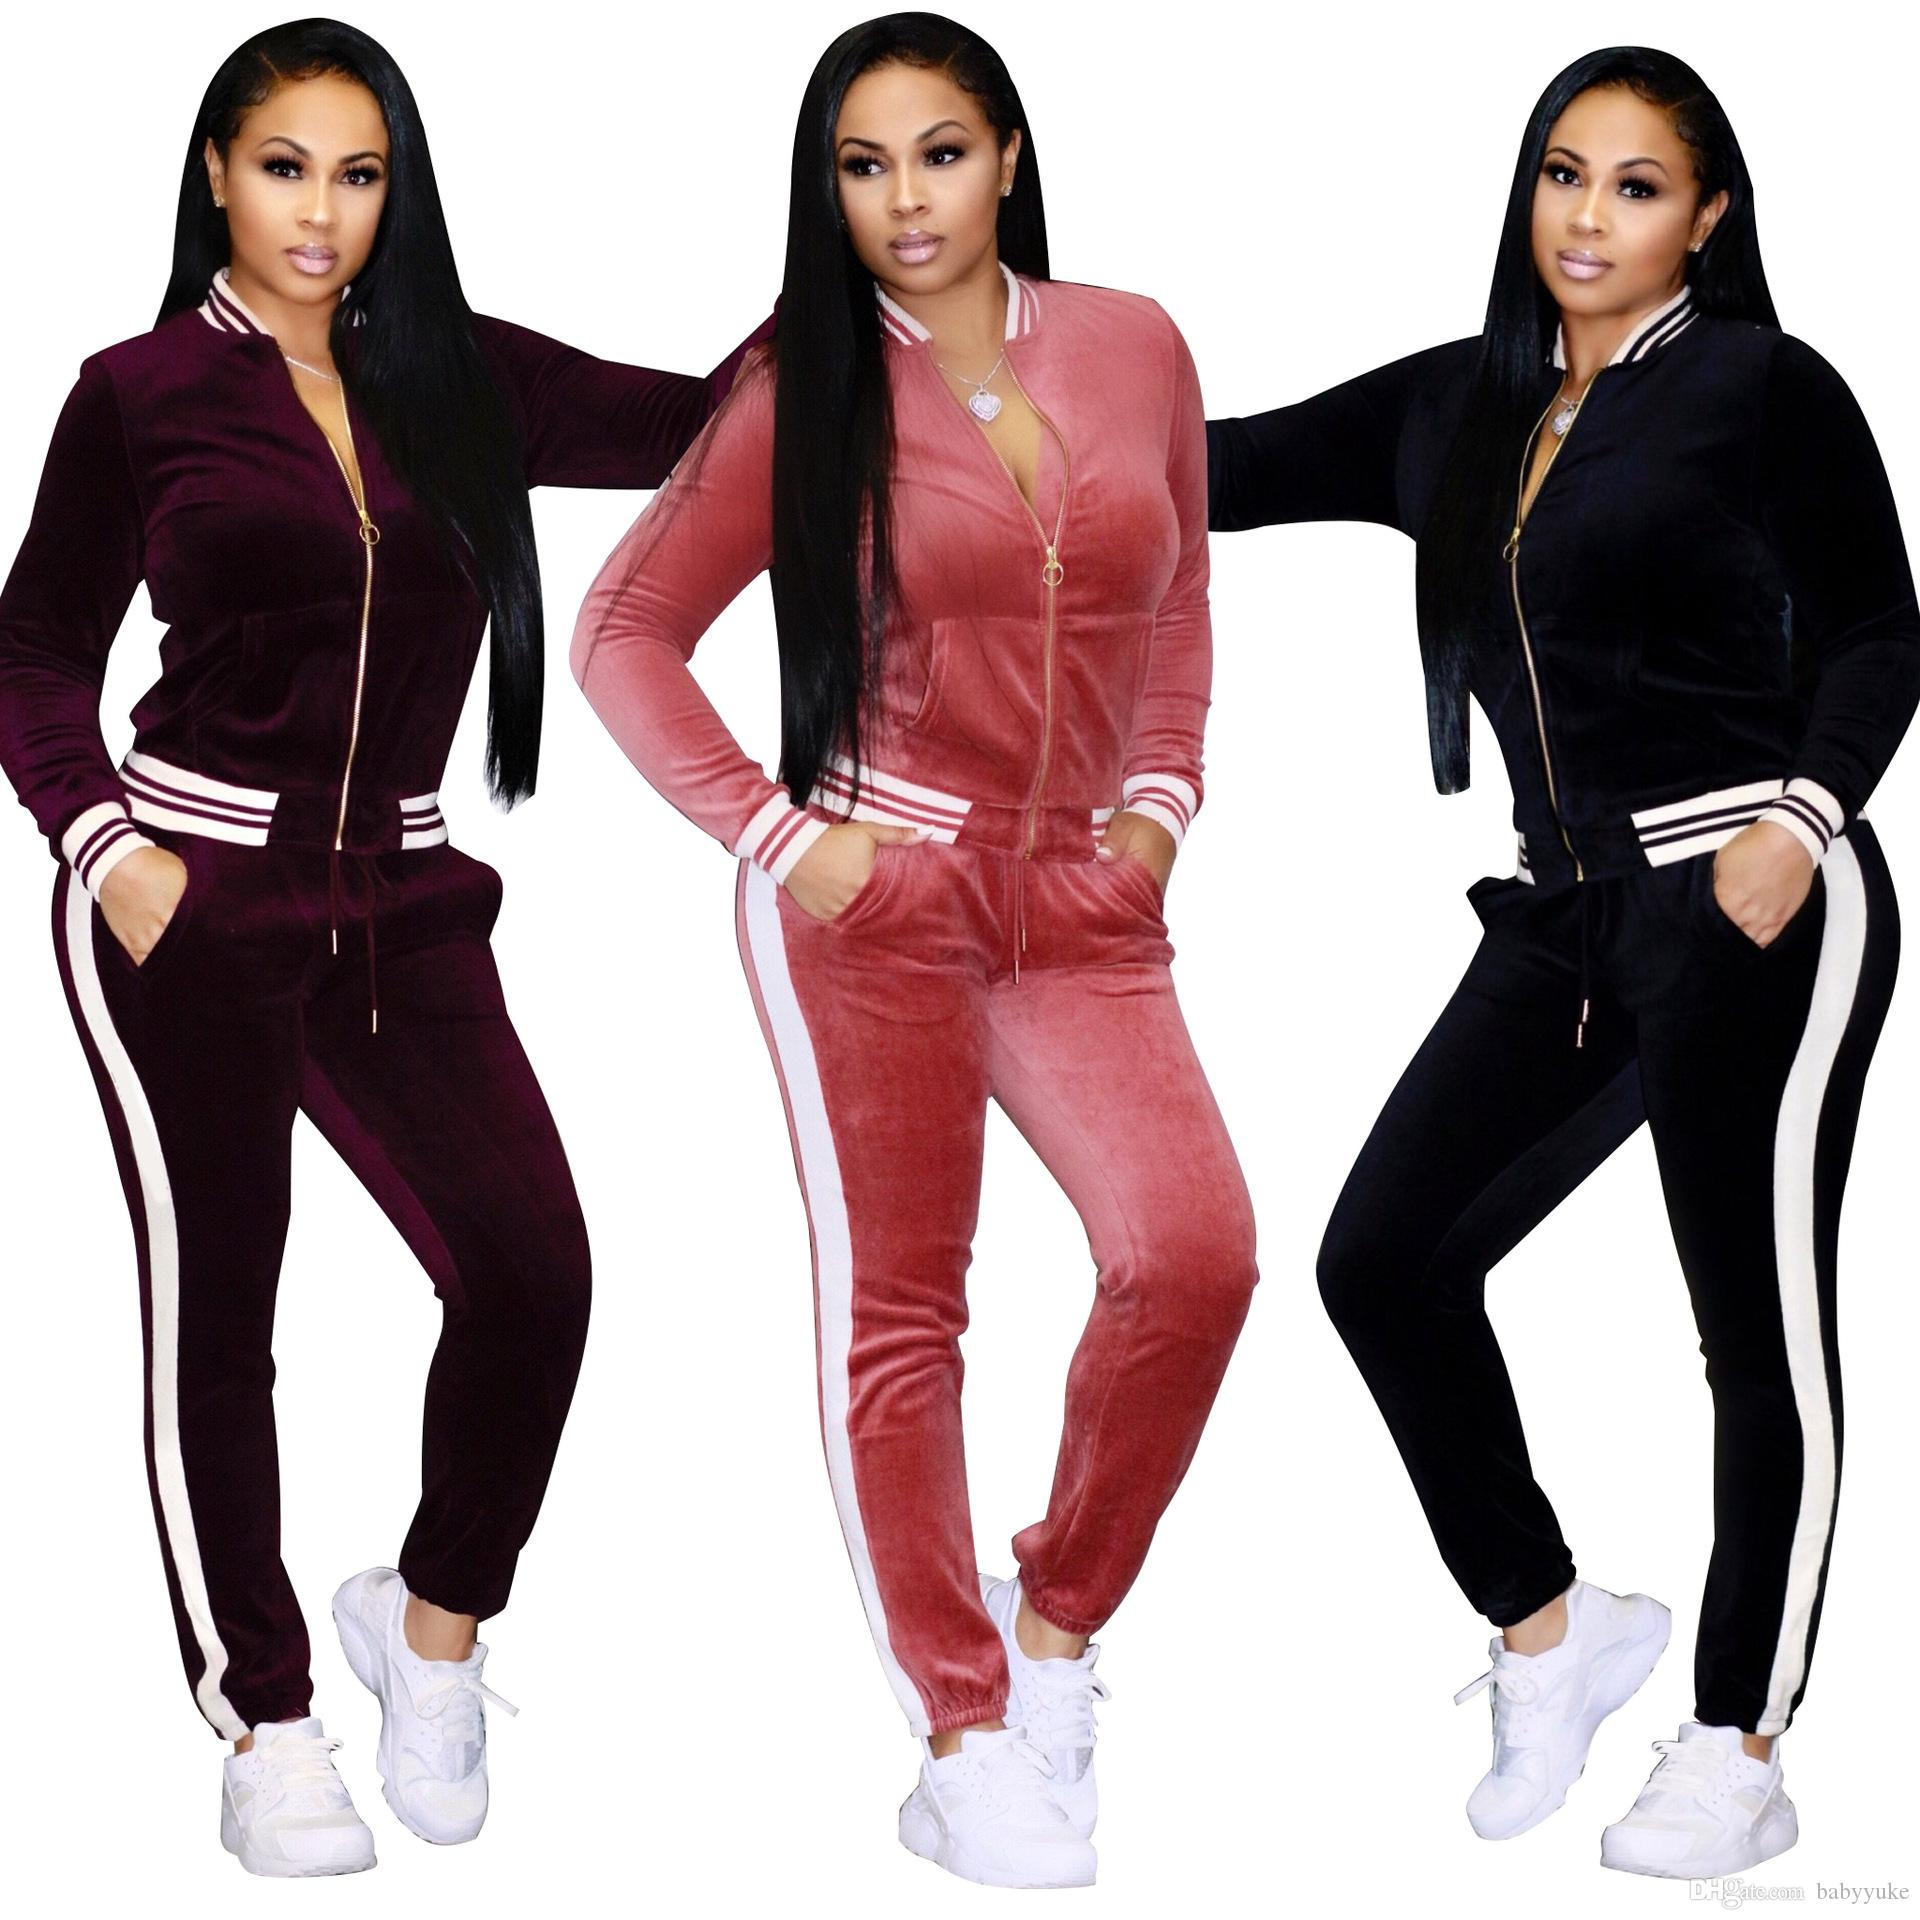 ac187270295b 2019 Women S Tracksuits Velvet Fabric Round Neck Zipper Jacket Top Pants  Sports Suit Sexy Hot Fashion Casual Tight Leg Sports Suit 229 From  Babyyuke